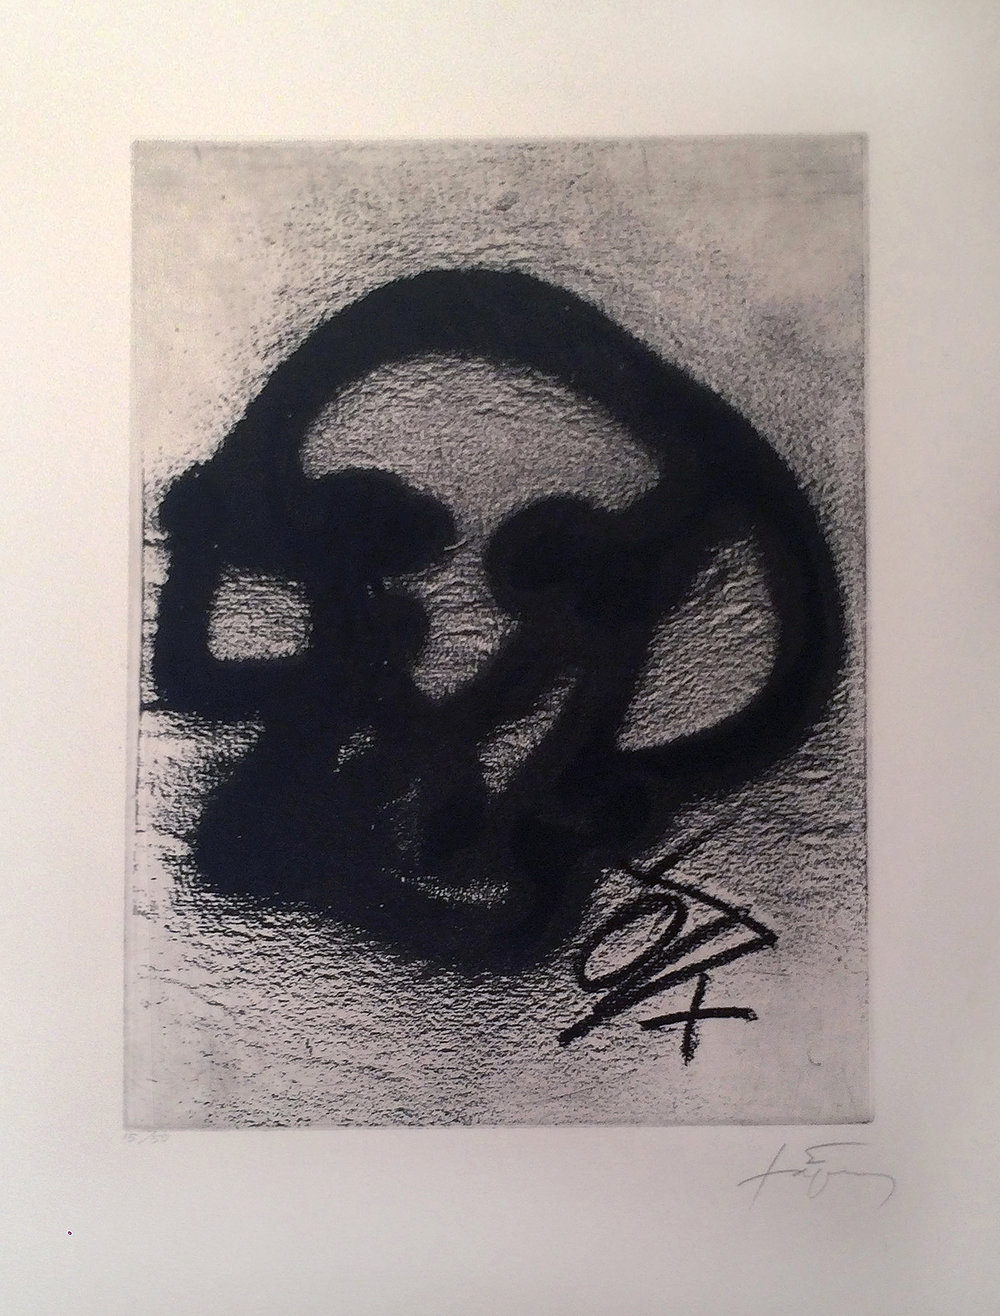 Equation III (ed. 15 of 50), 1987, 25 x 19 inches, Etching